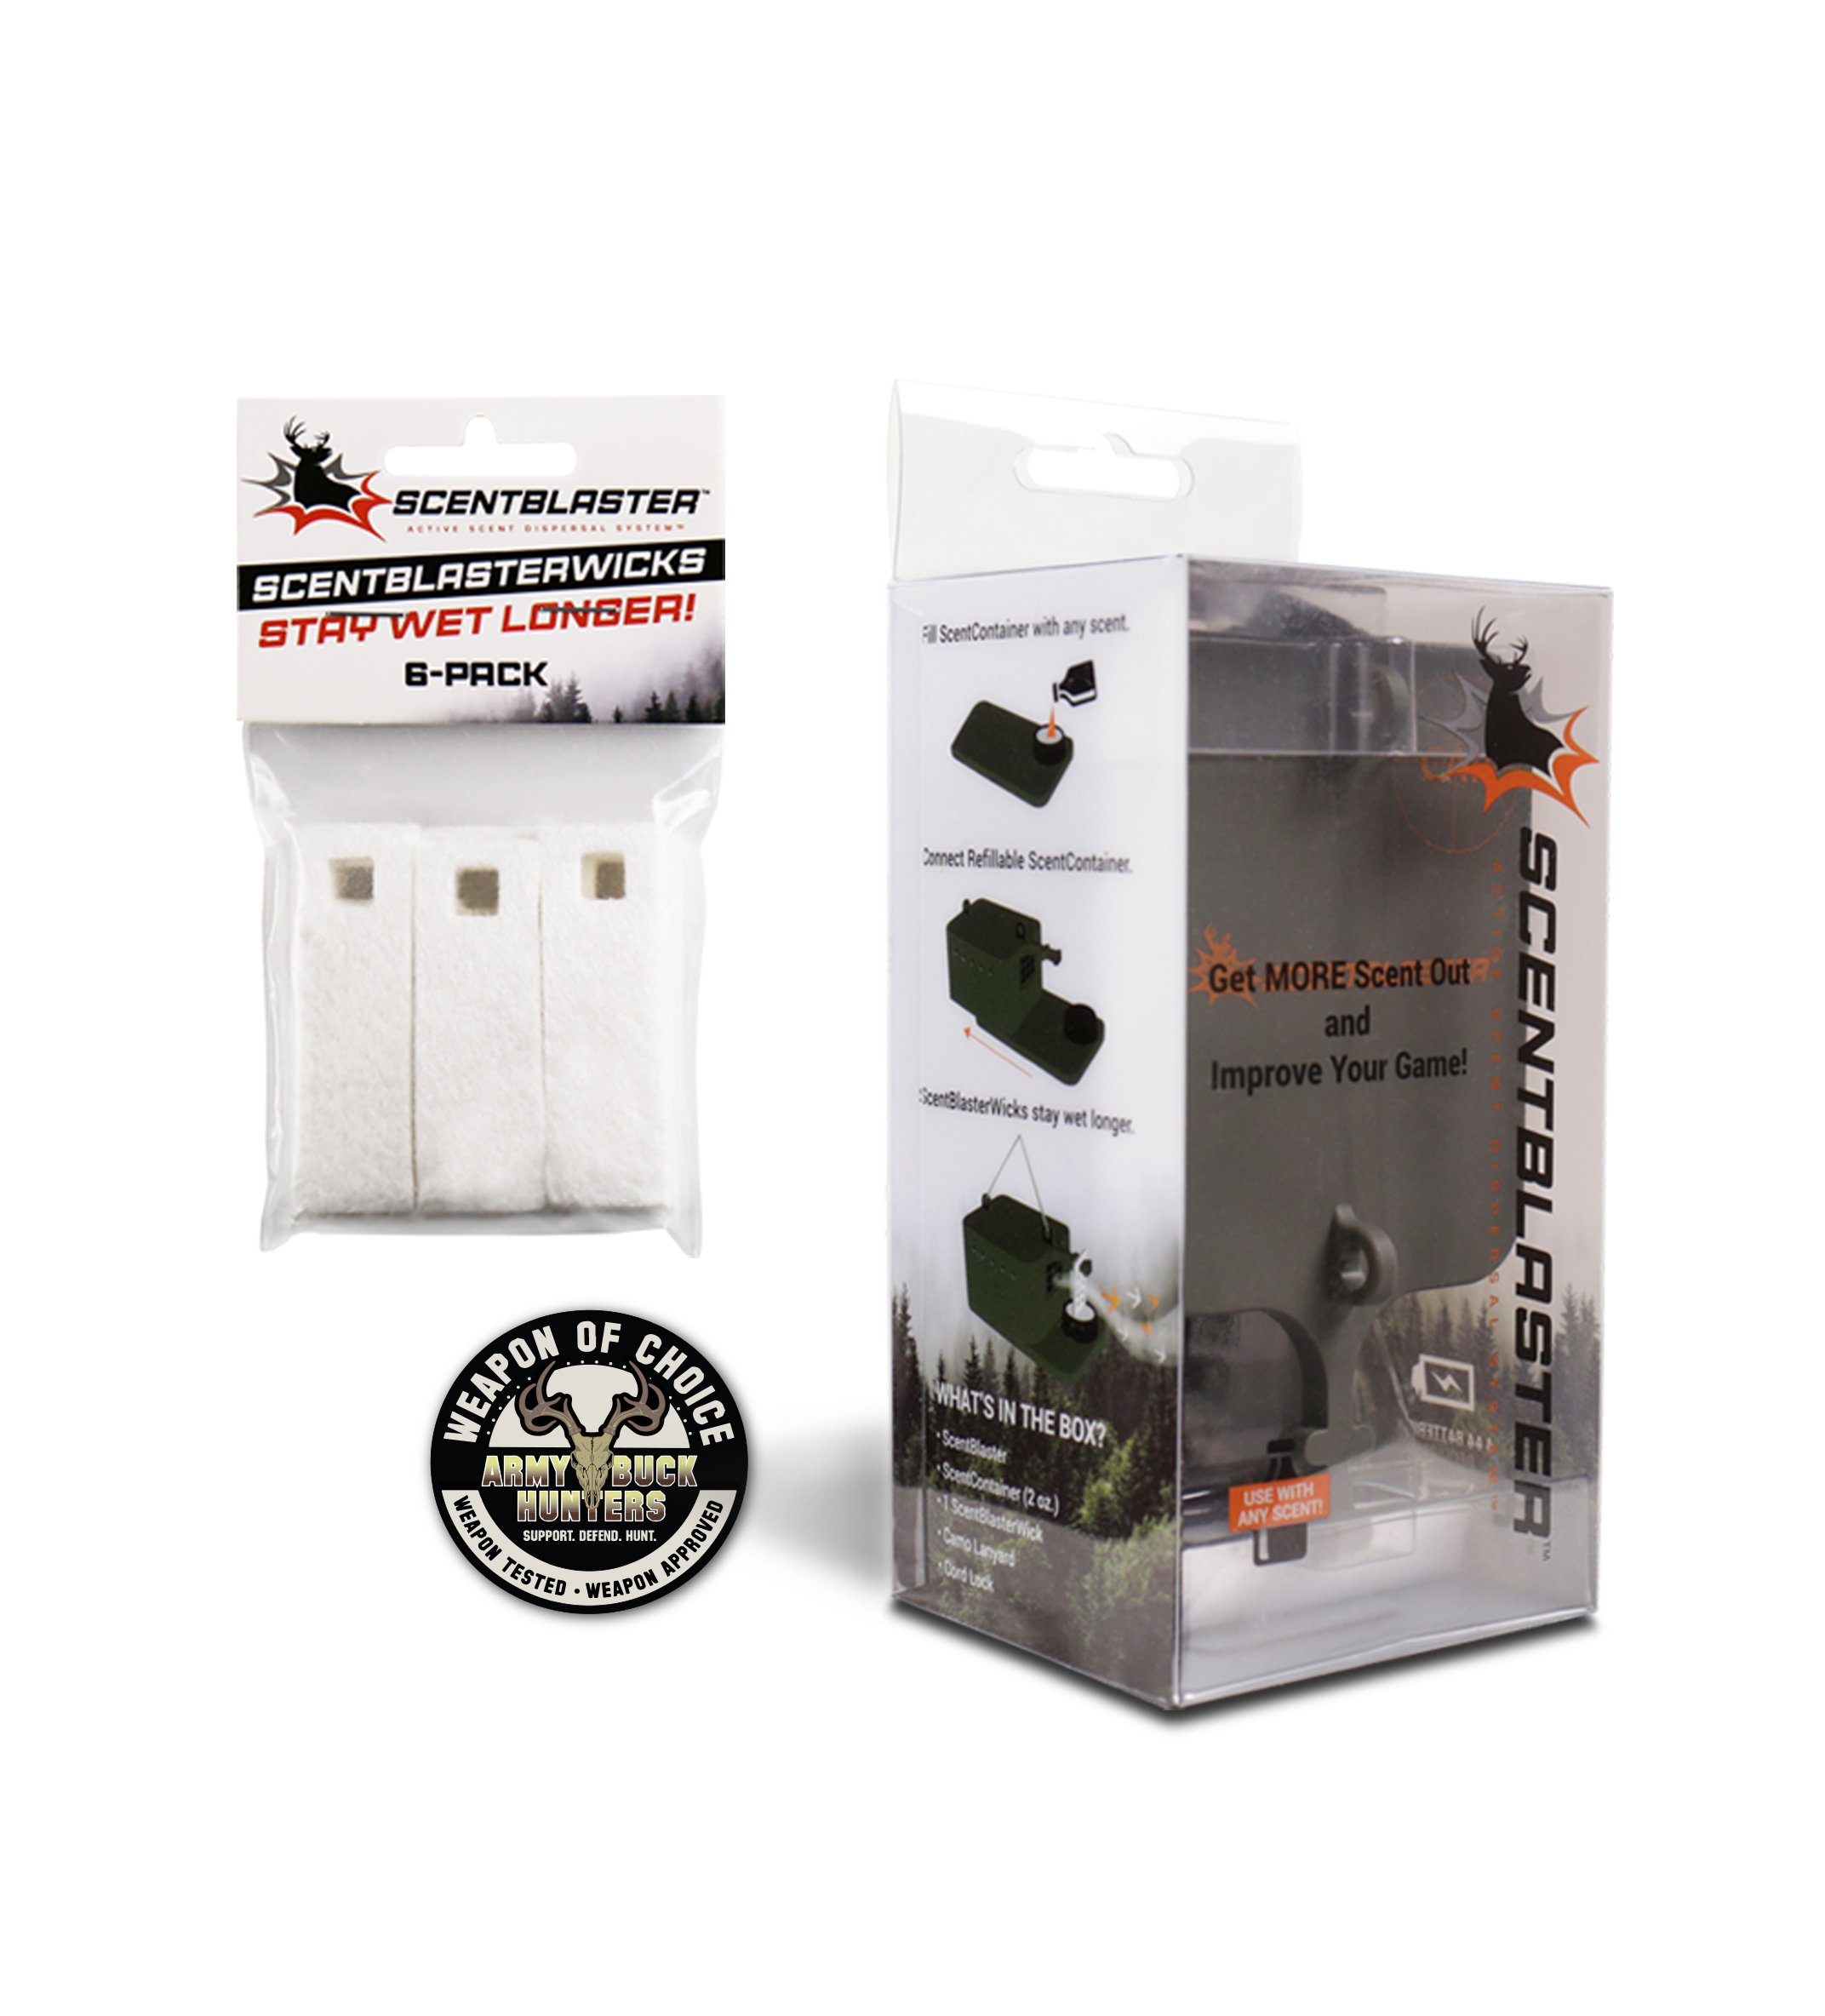 ScentBlaster is the best wicking system for hunters: increase the range & effectiveness of any hunting scent to attract more game to the kill zone!